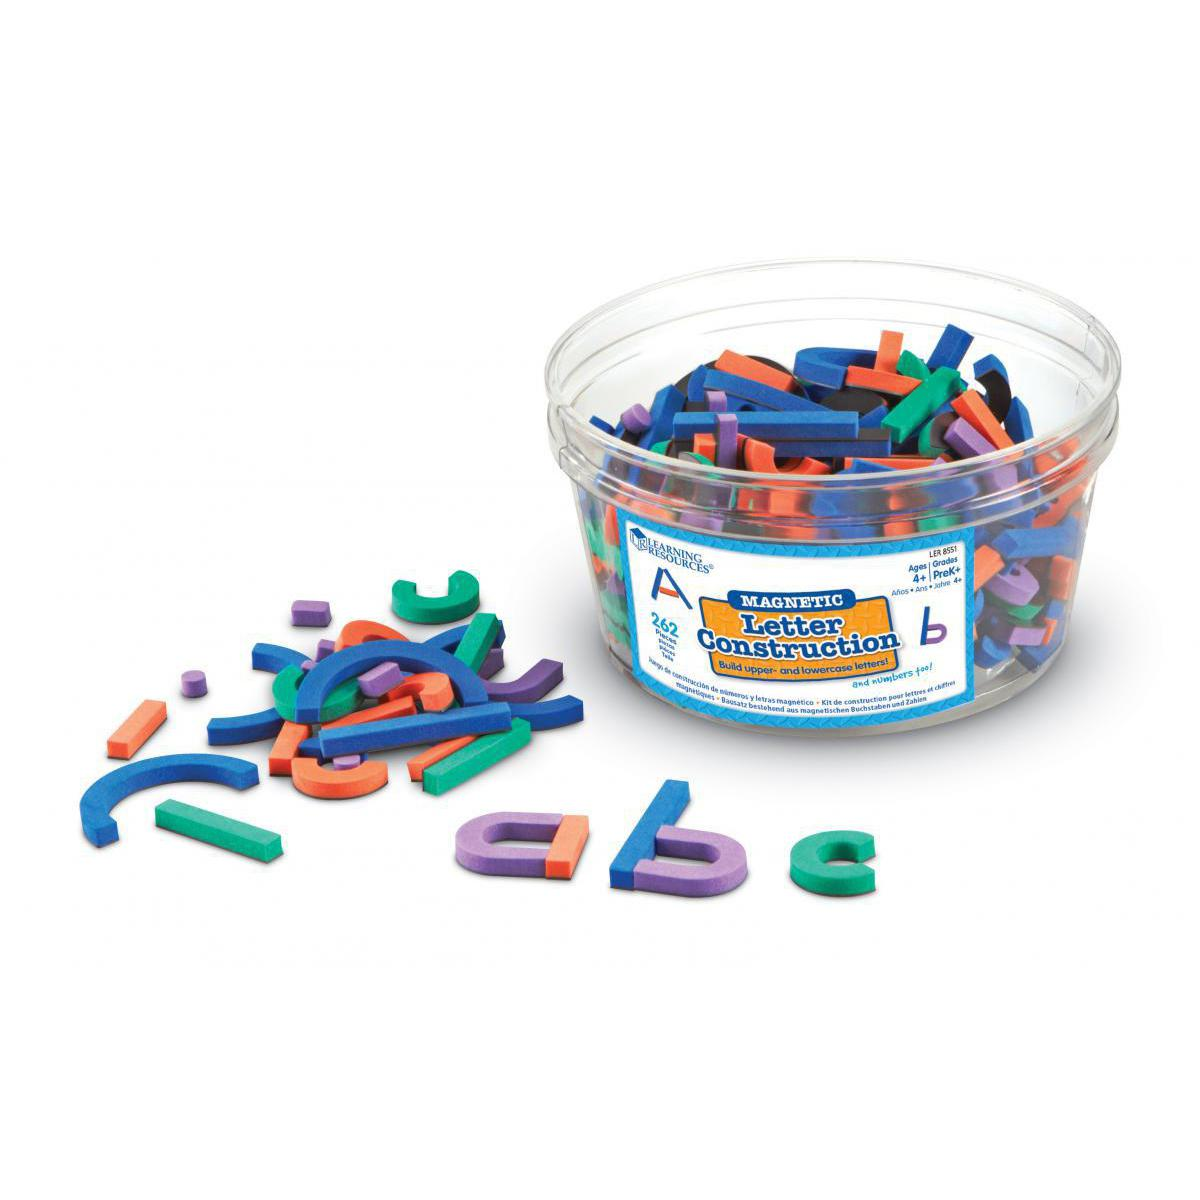 Letter Construction Magnets